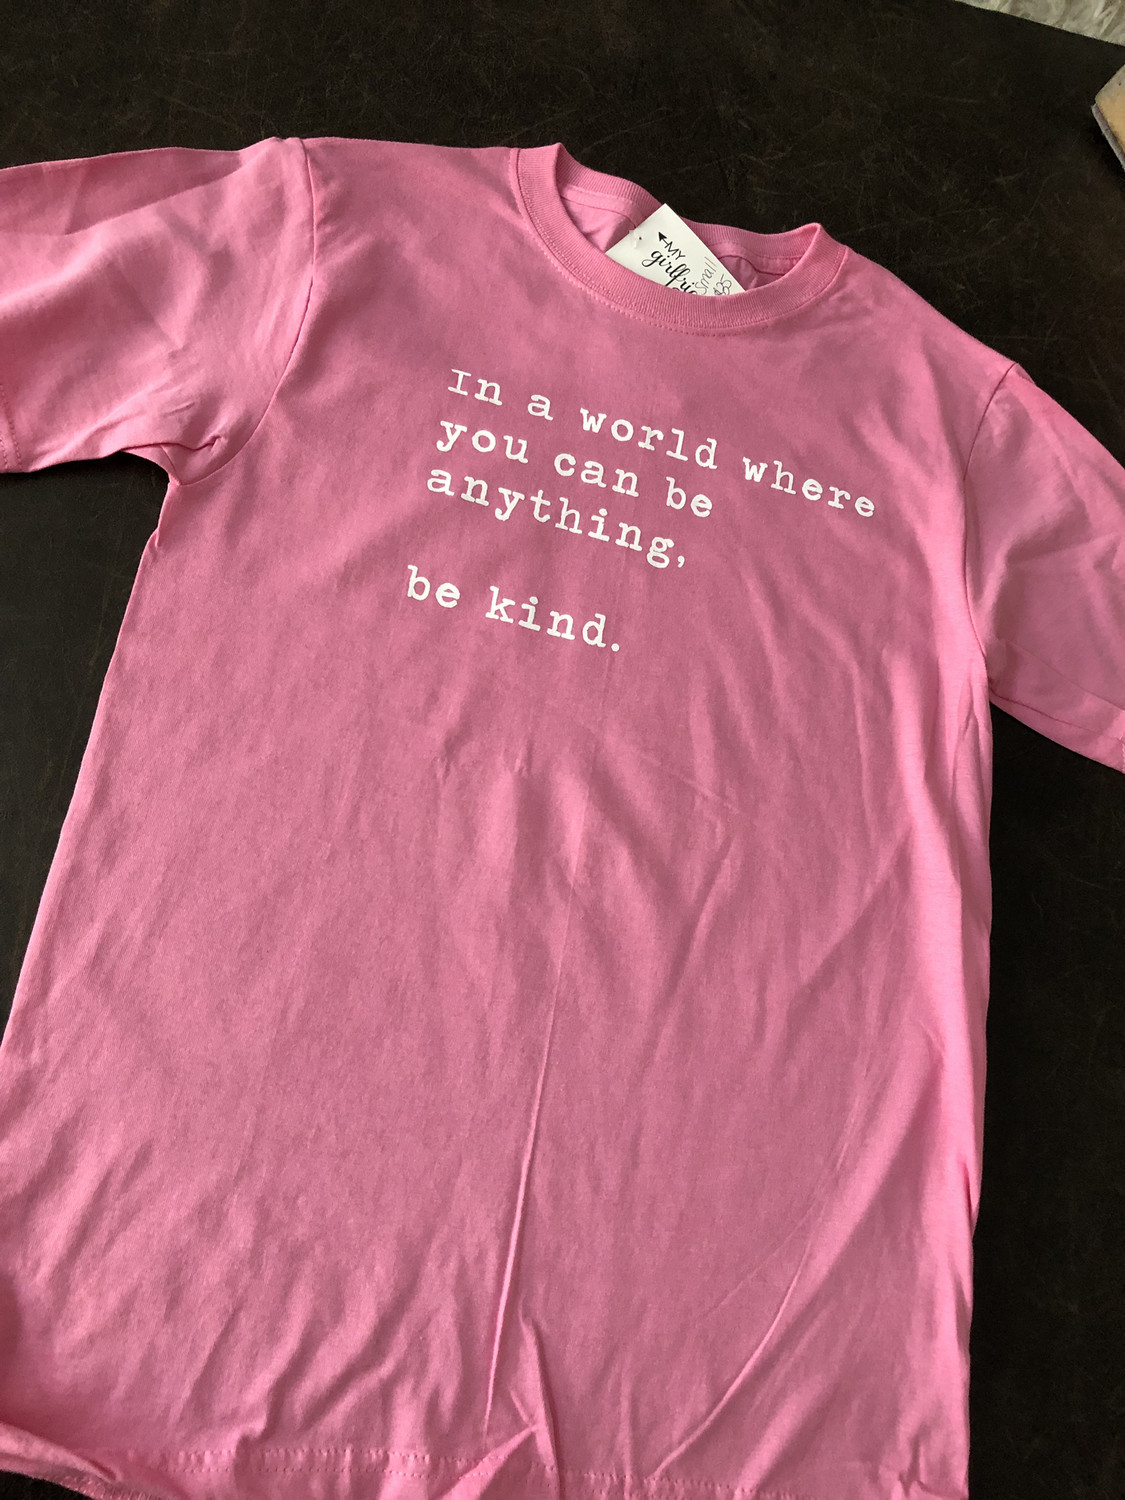 Be Kind ~ PINK SHIRT ANTI BULLY DAY Collection ~Baby Pink